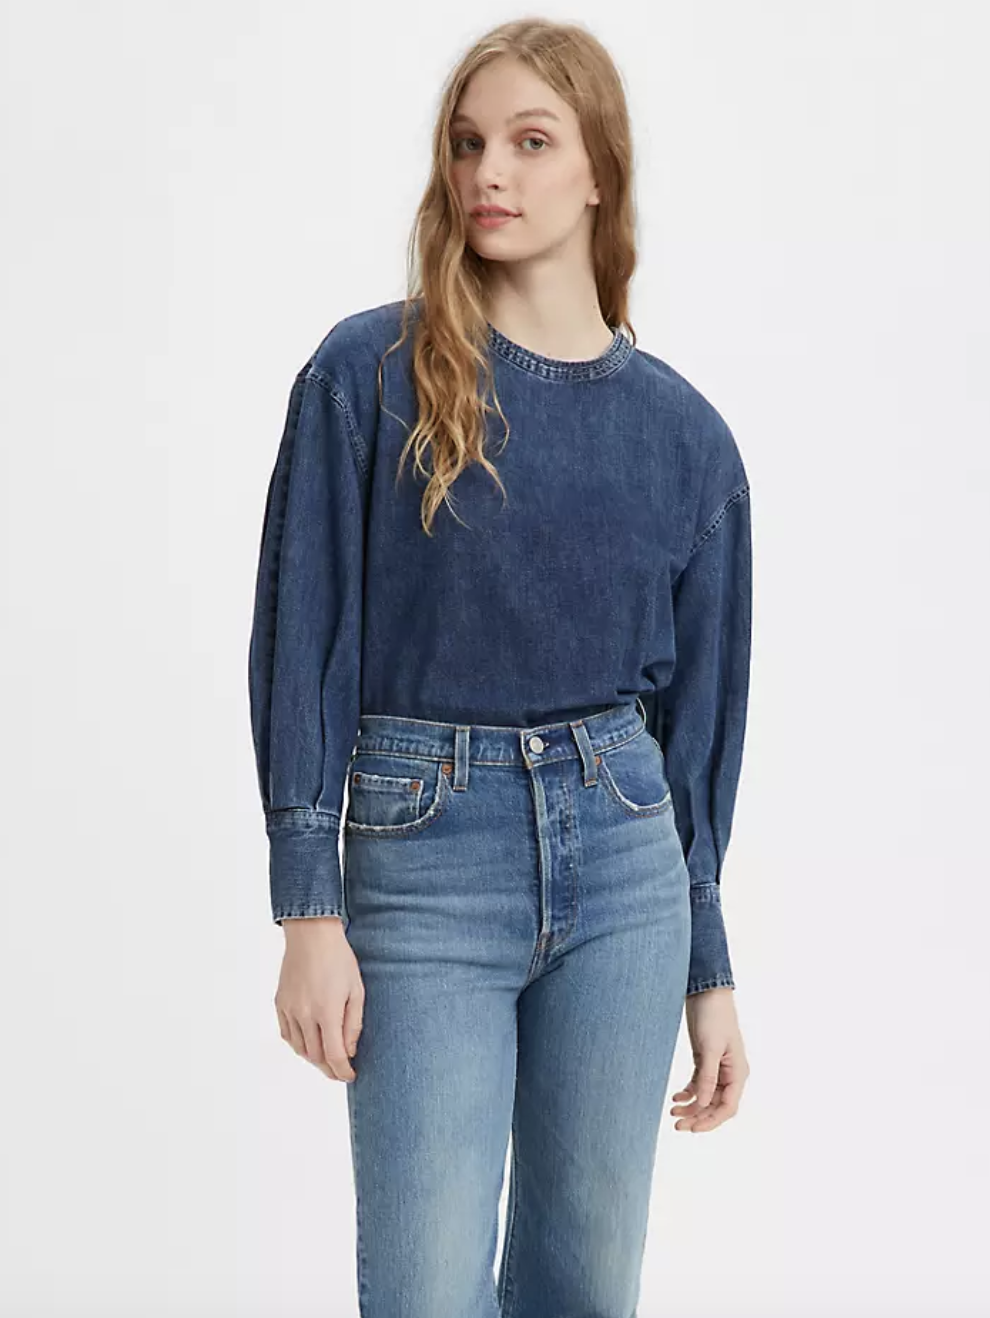 Model in a dark blue denim long sleeve blouse with puff sleeves